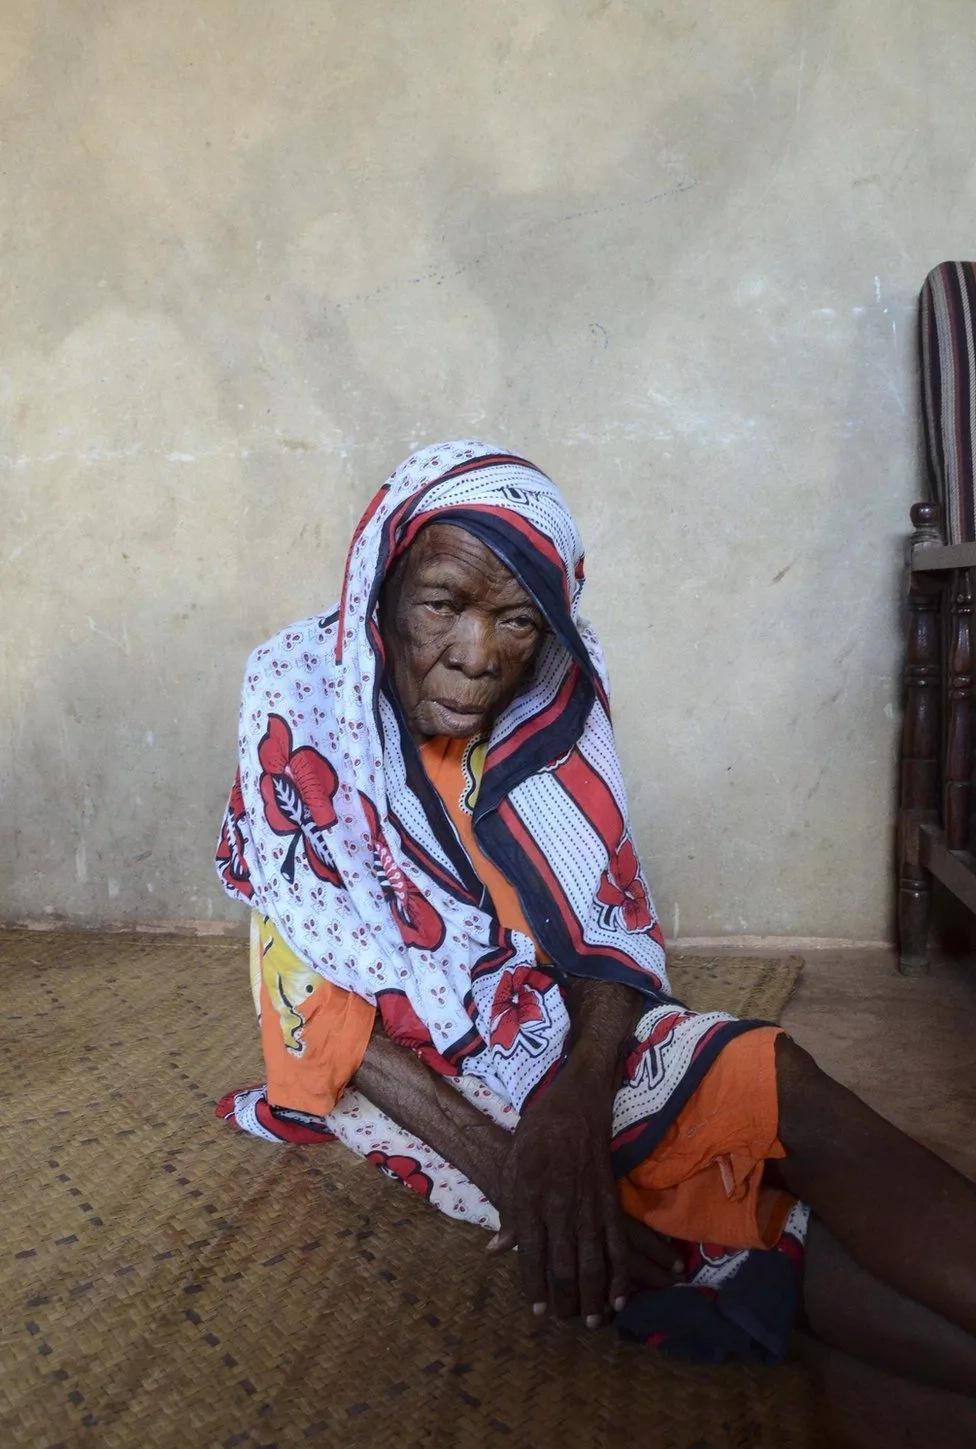 She is said to be the oldest woman in her village. Photo: BBC/Leah Beach